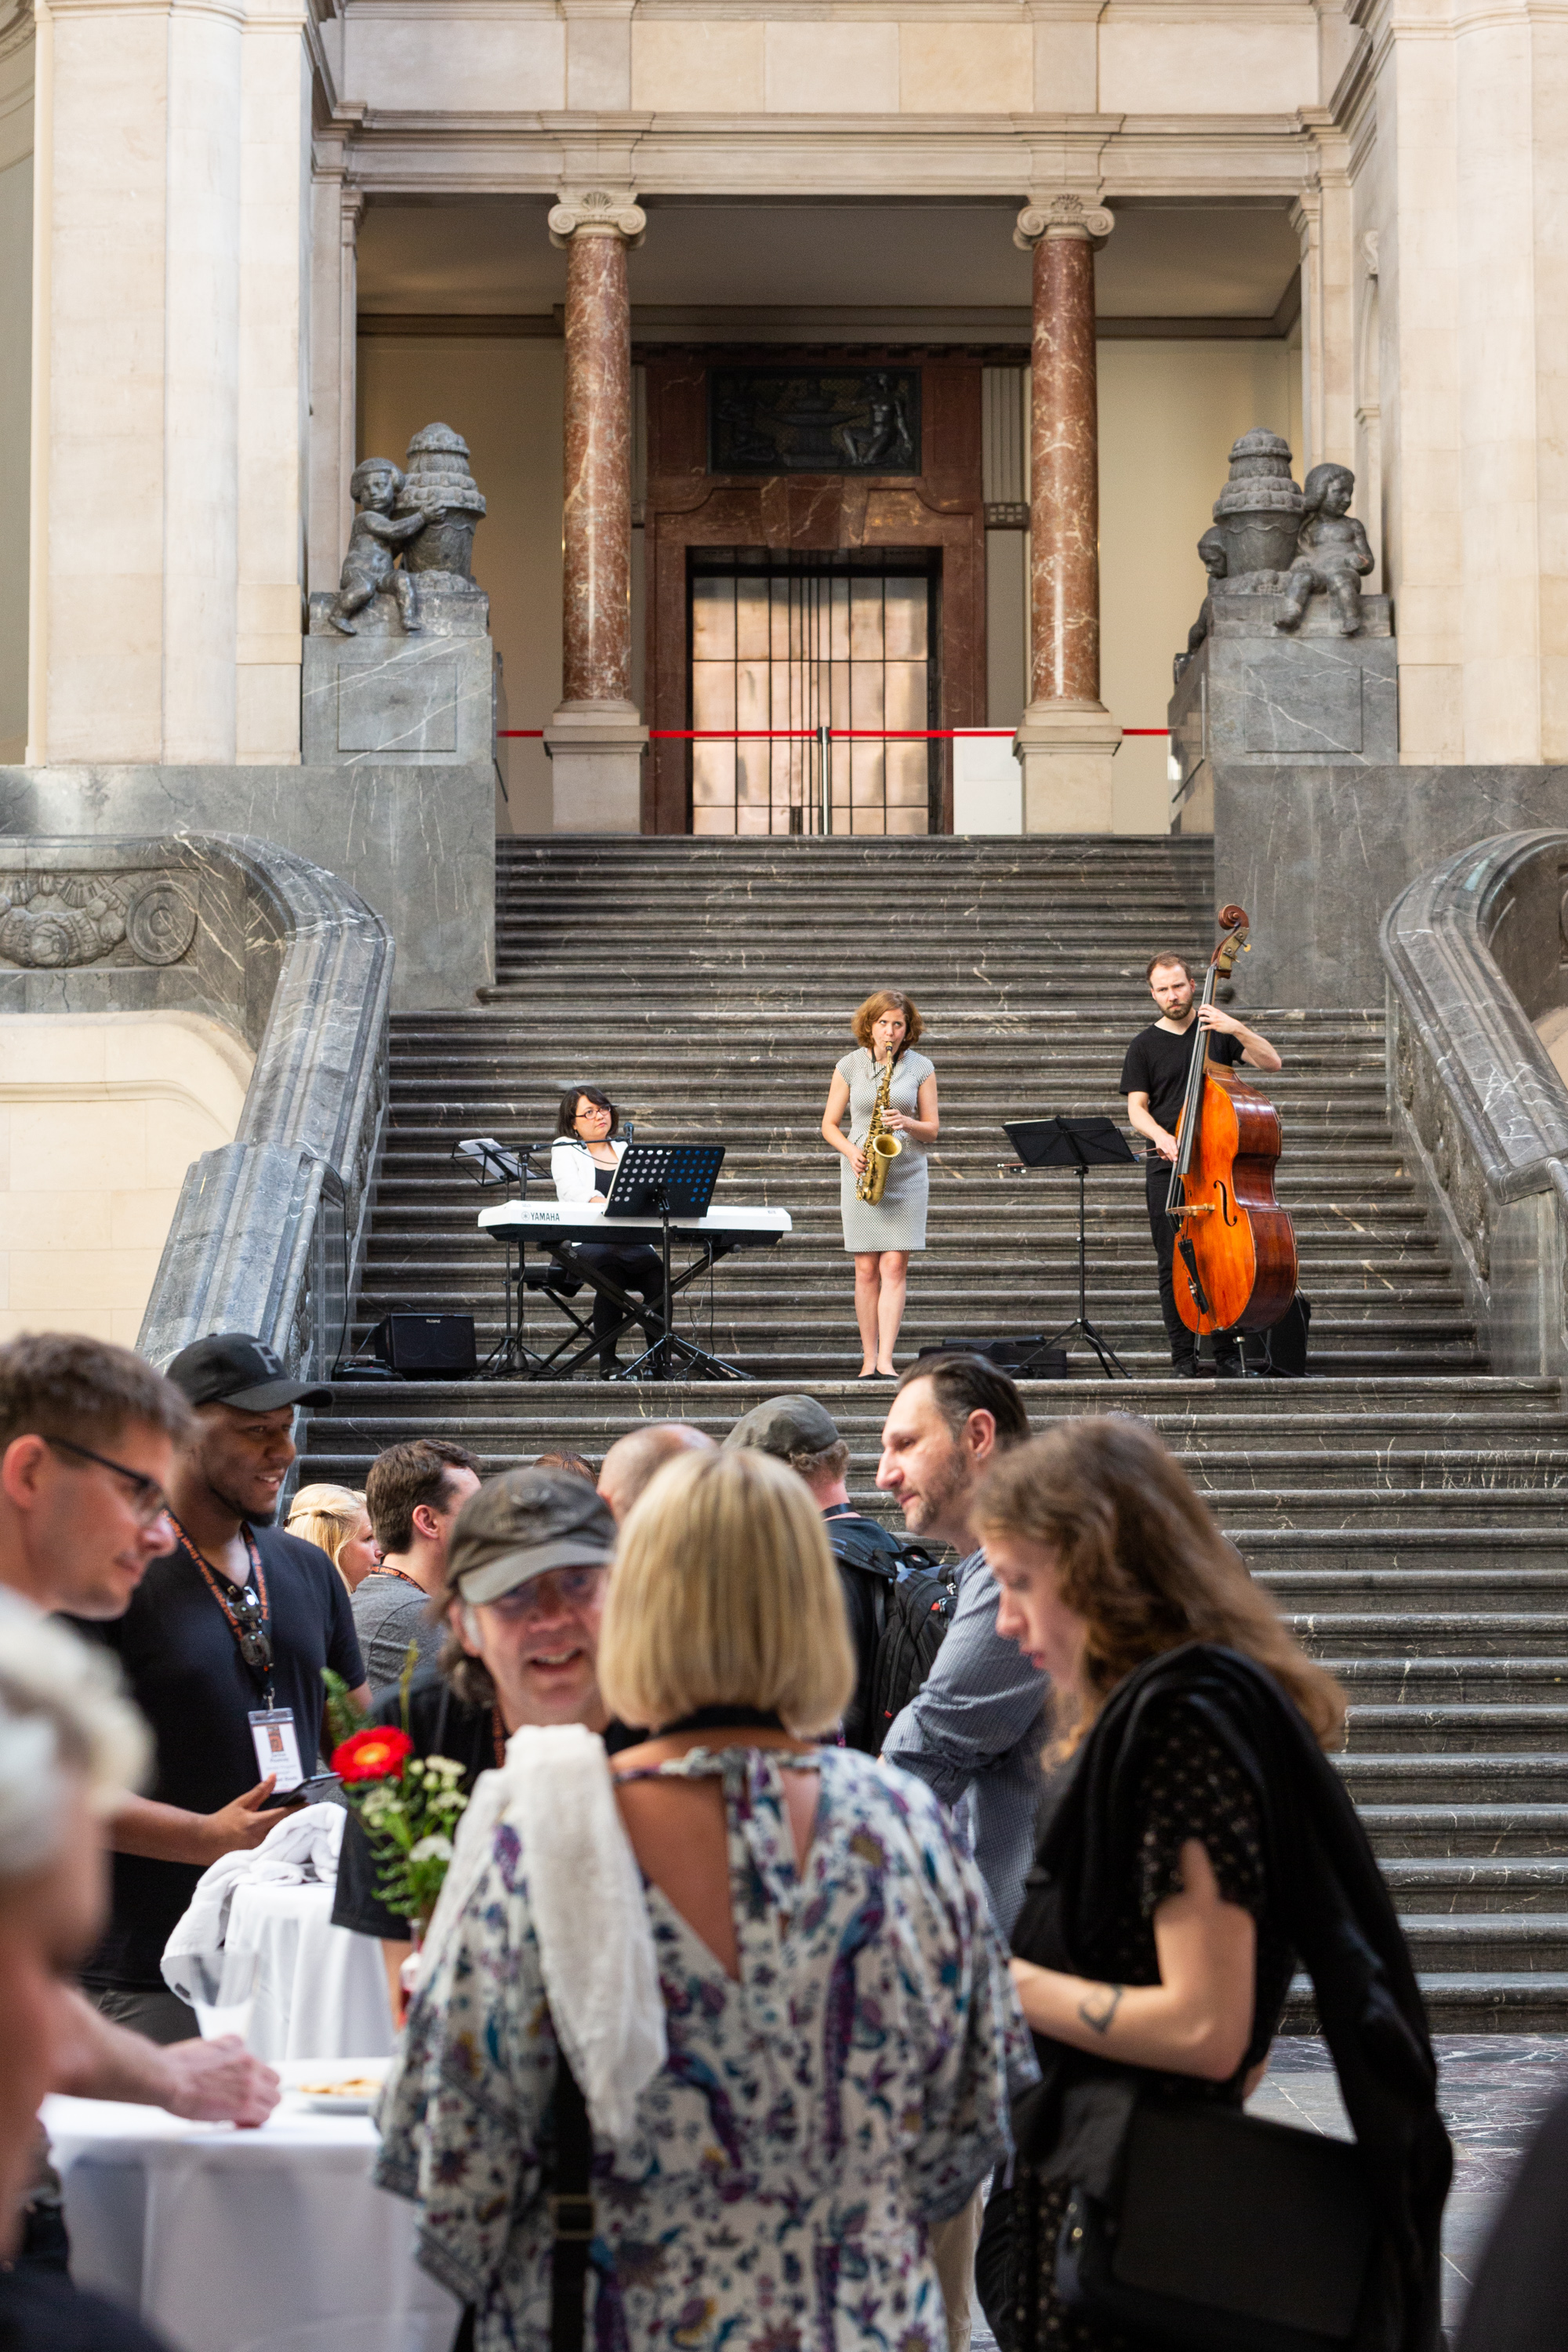 Welcome Reception at the Neues Rathaus during the 2019 Global Street Newspaper Summit in Hannover, Germany 17th June 2019. The summit was co-organised by INSP (International Network of Street Papers) and Asphalt- Hannover street magazine. In 2019 both Aspahlt and INSP celebrate their 25th anniversaries. (Credit: Selim Korycki)